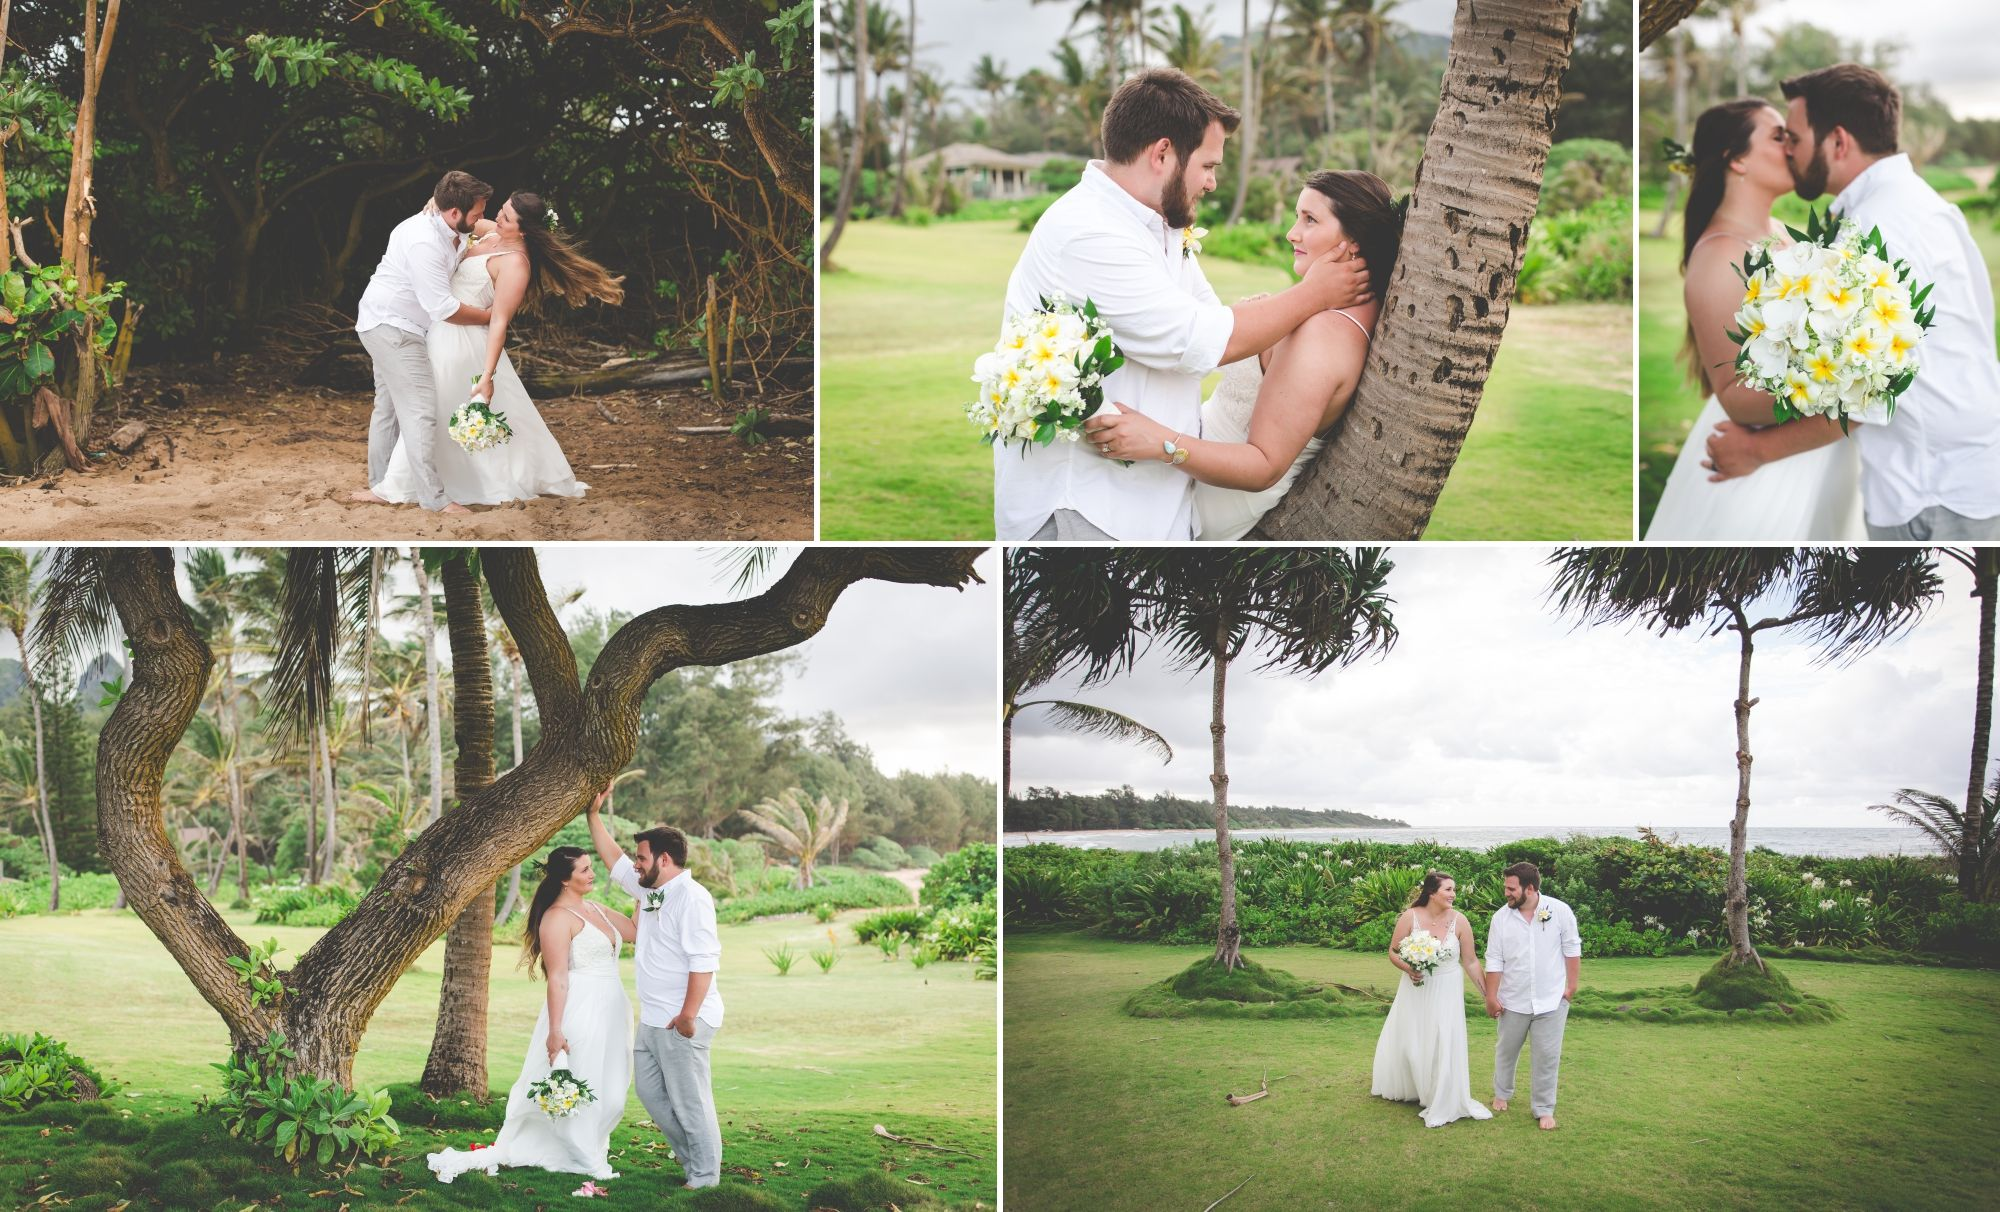 Collage of the bride and groom posing together on an island with a beach, bright green grass, and palm trees.